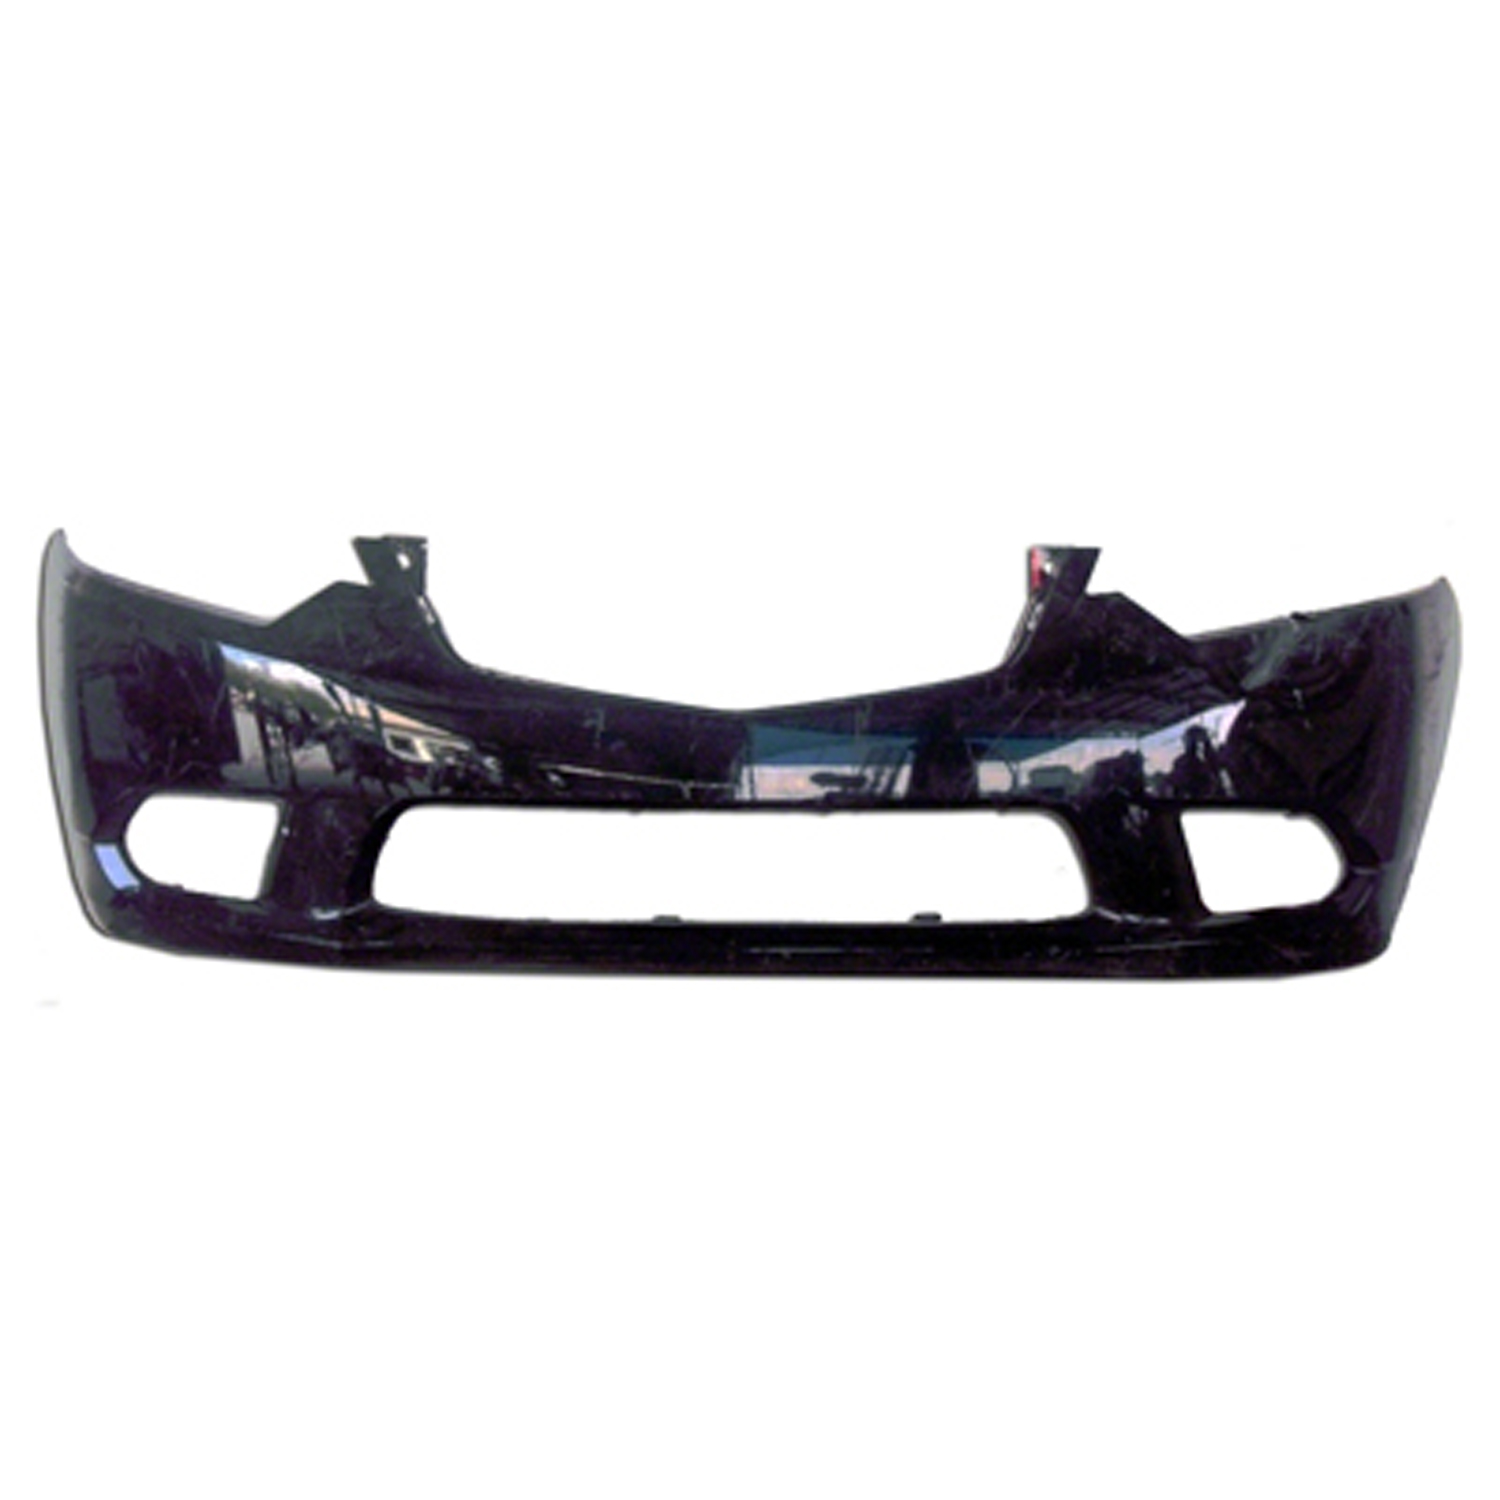 Fits 2011-2014 Acura TSX Front Bumper Cover 101-51190